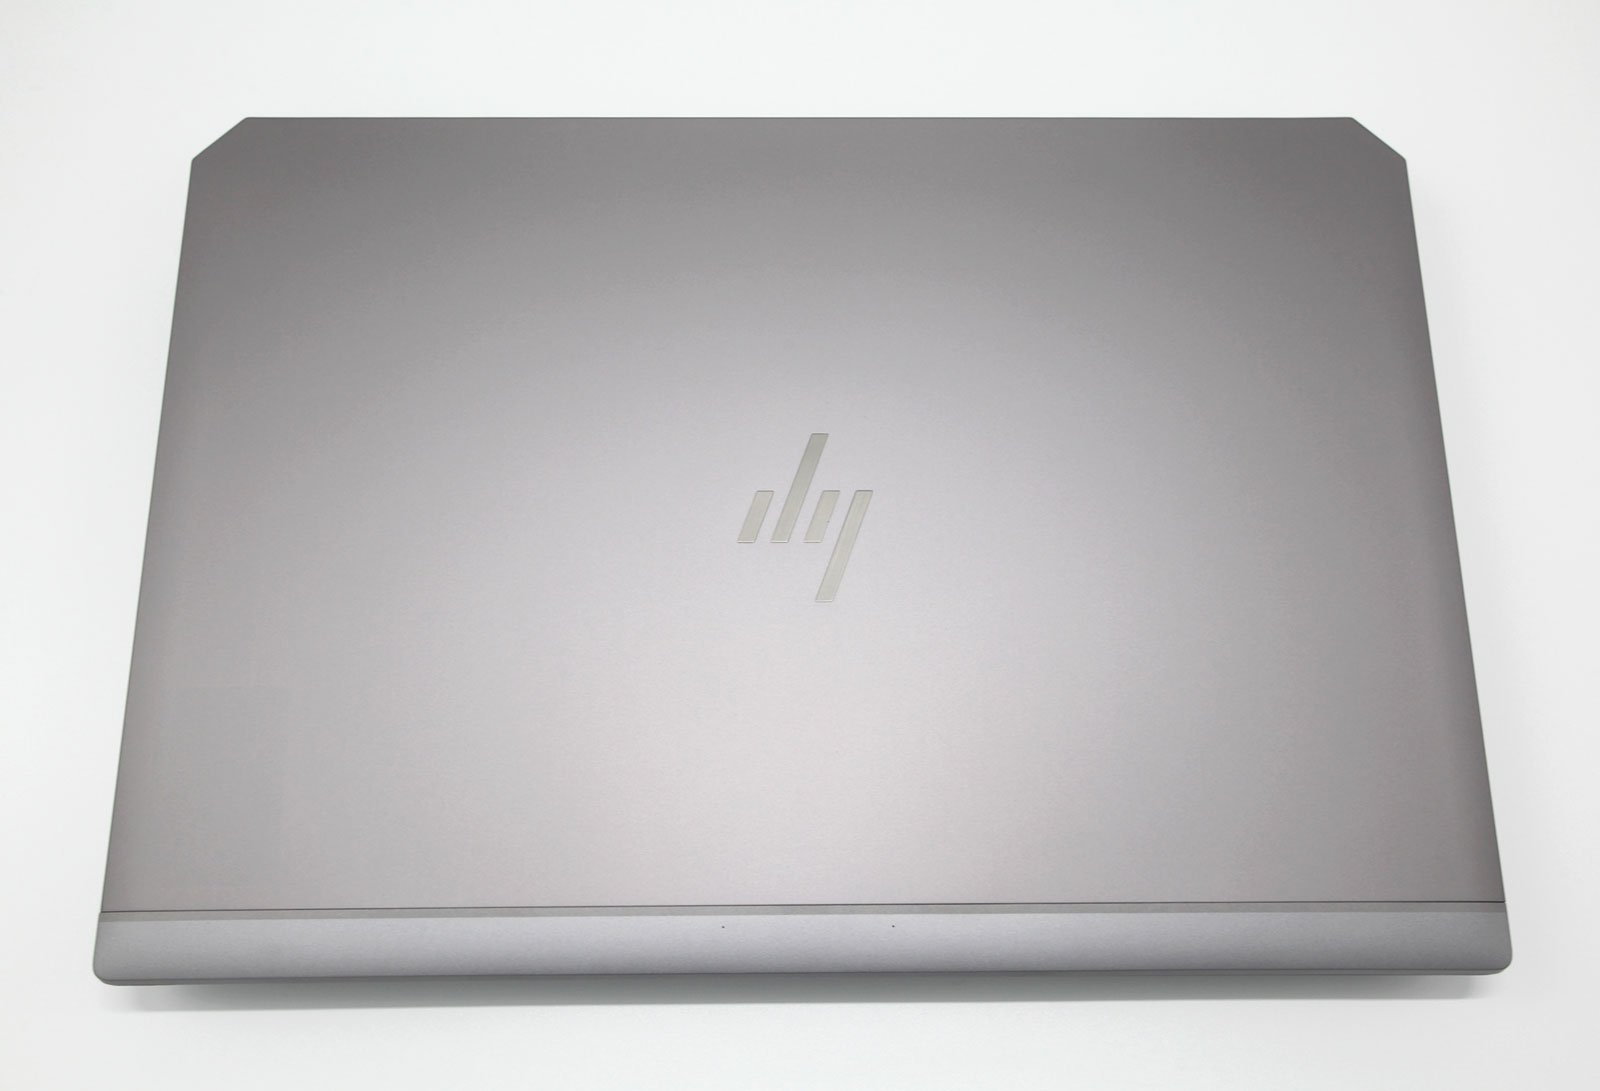 HP ZBook 17 G5 Laptop: Core i7-8850H, 32GB RAM, P4200, 1TB SSD+ HDD, Warranty - CruiseTech